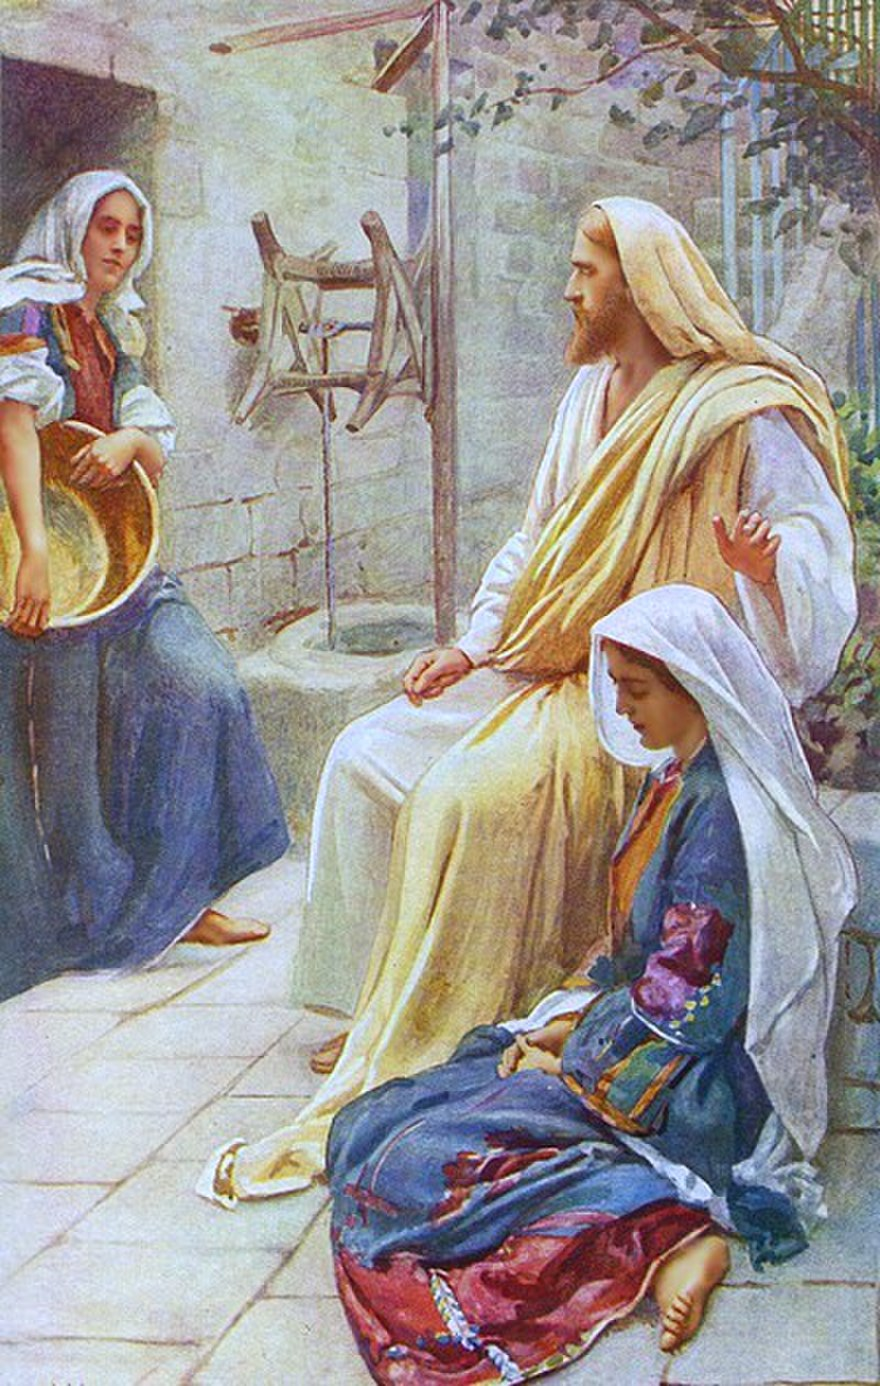 The houses in New Testament times are rather small so even when preparing food, both the ladies will be able to hear Jesus.